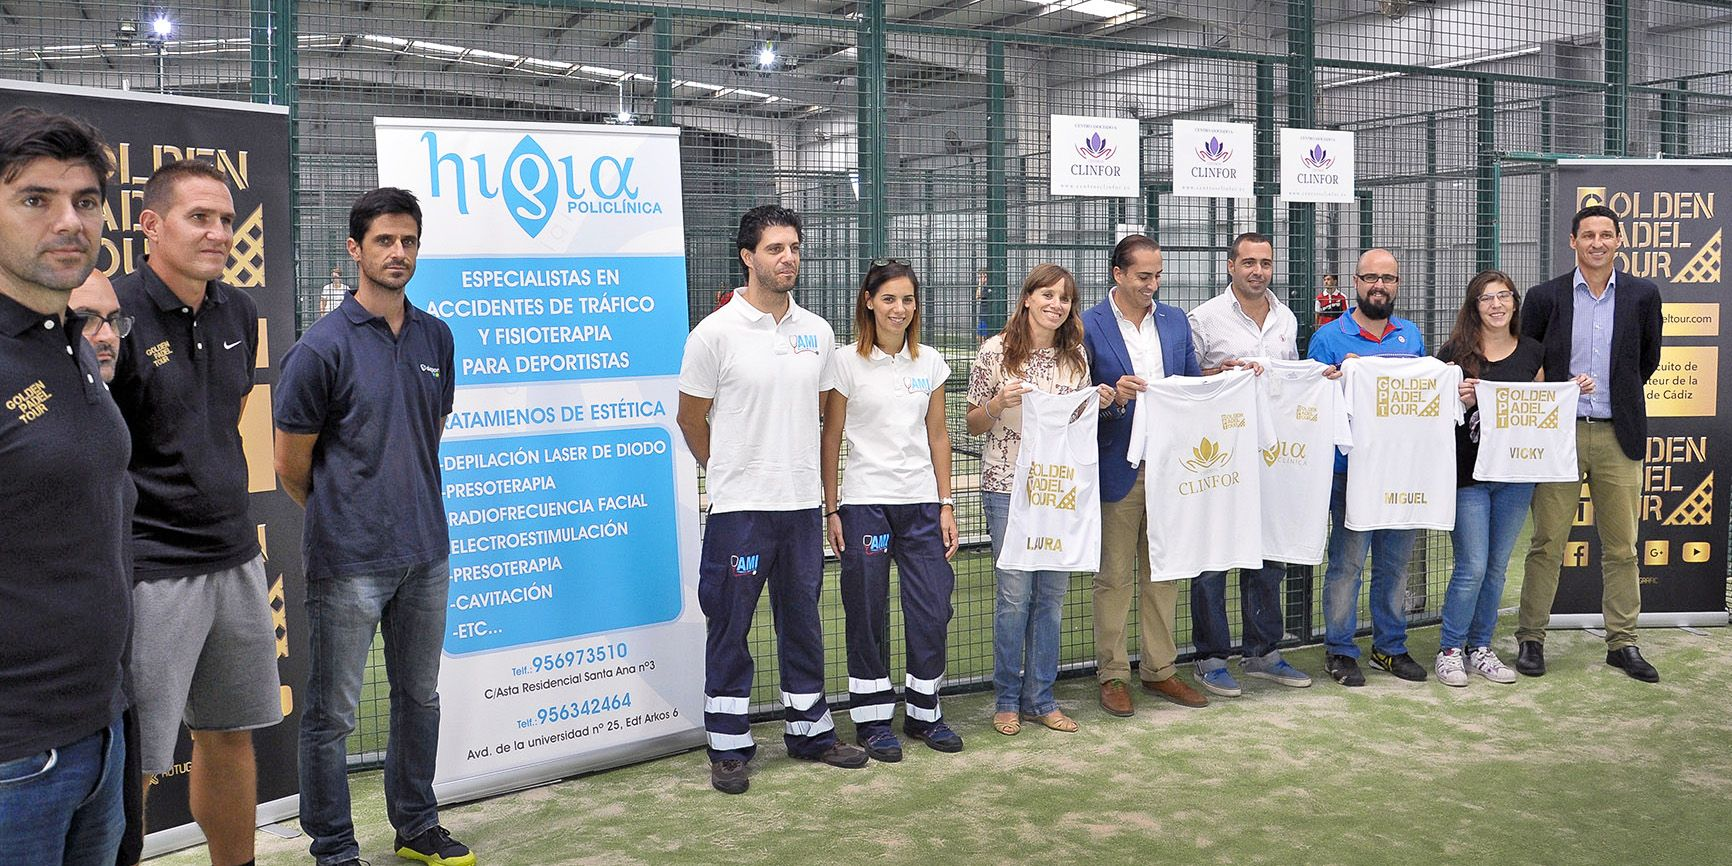 golden-padel-tour-1